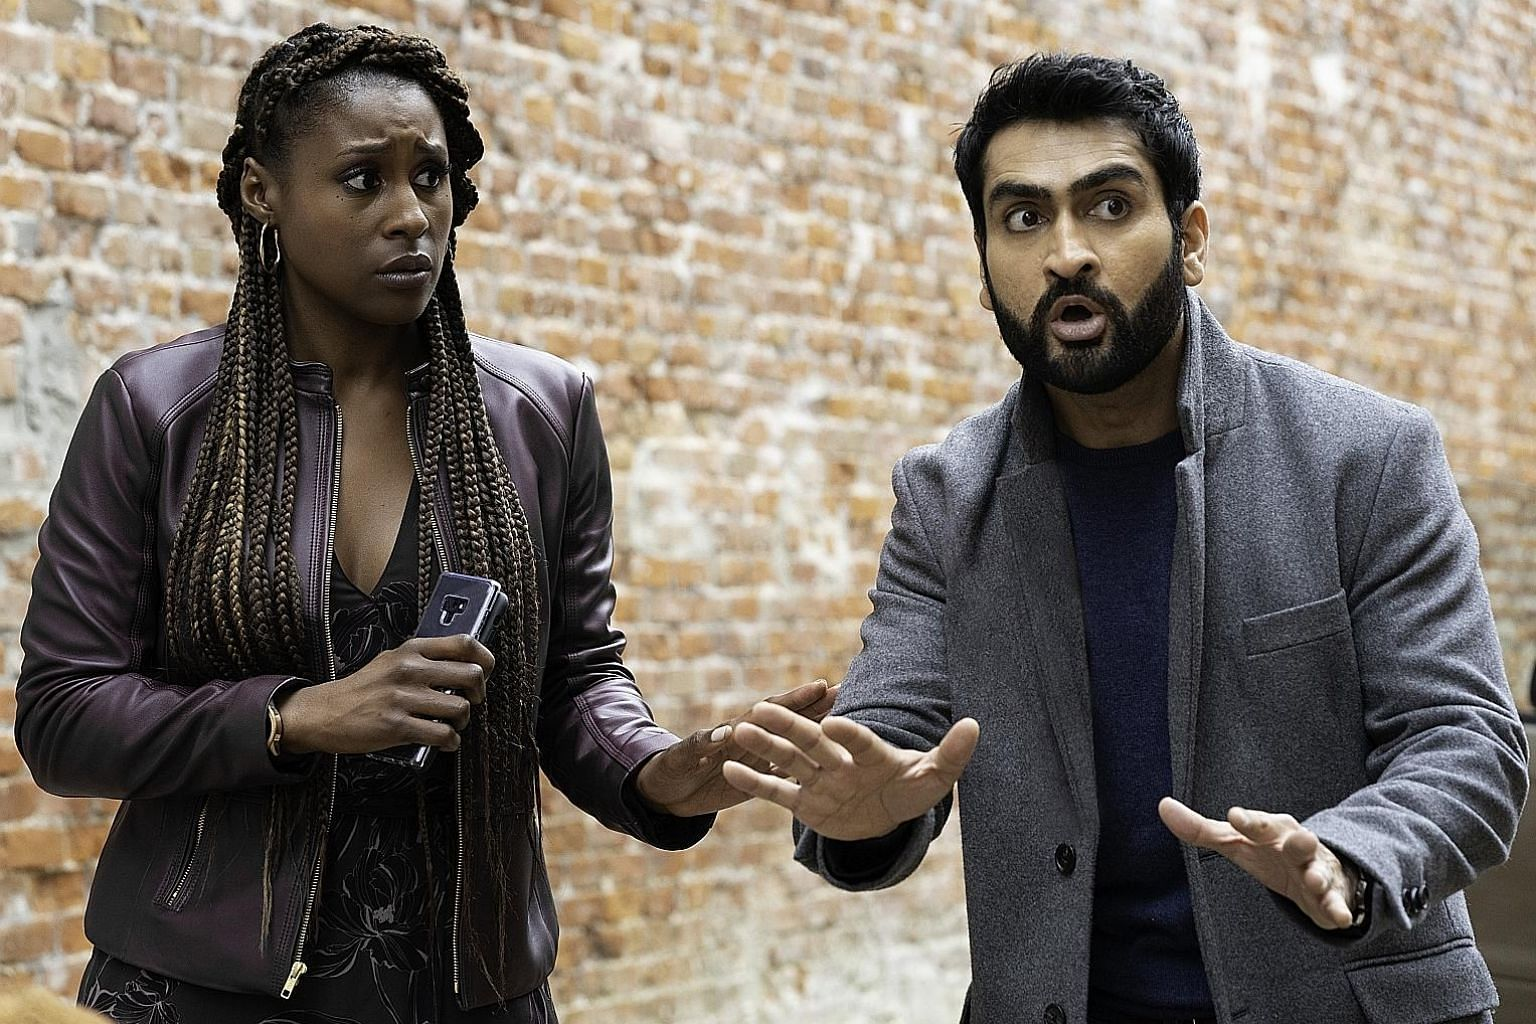 Kumail Nanjiani (right) shows off his comedic chops in Netflix romcom The Lovebirds, along with co-star Issa Rae (left).